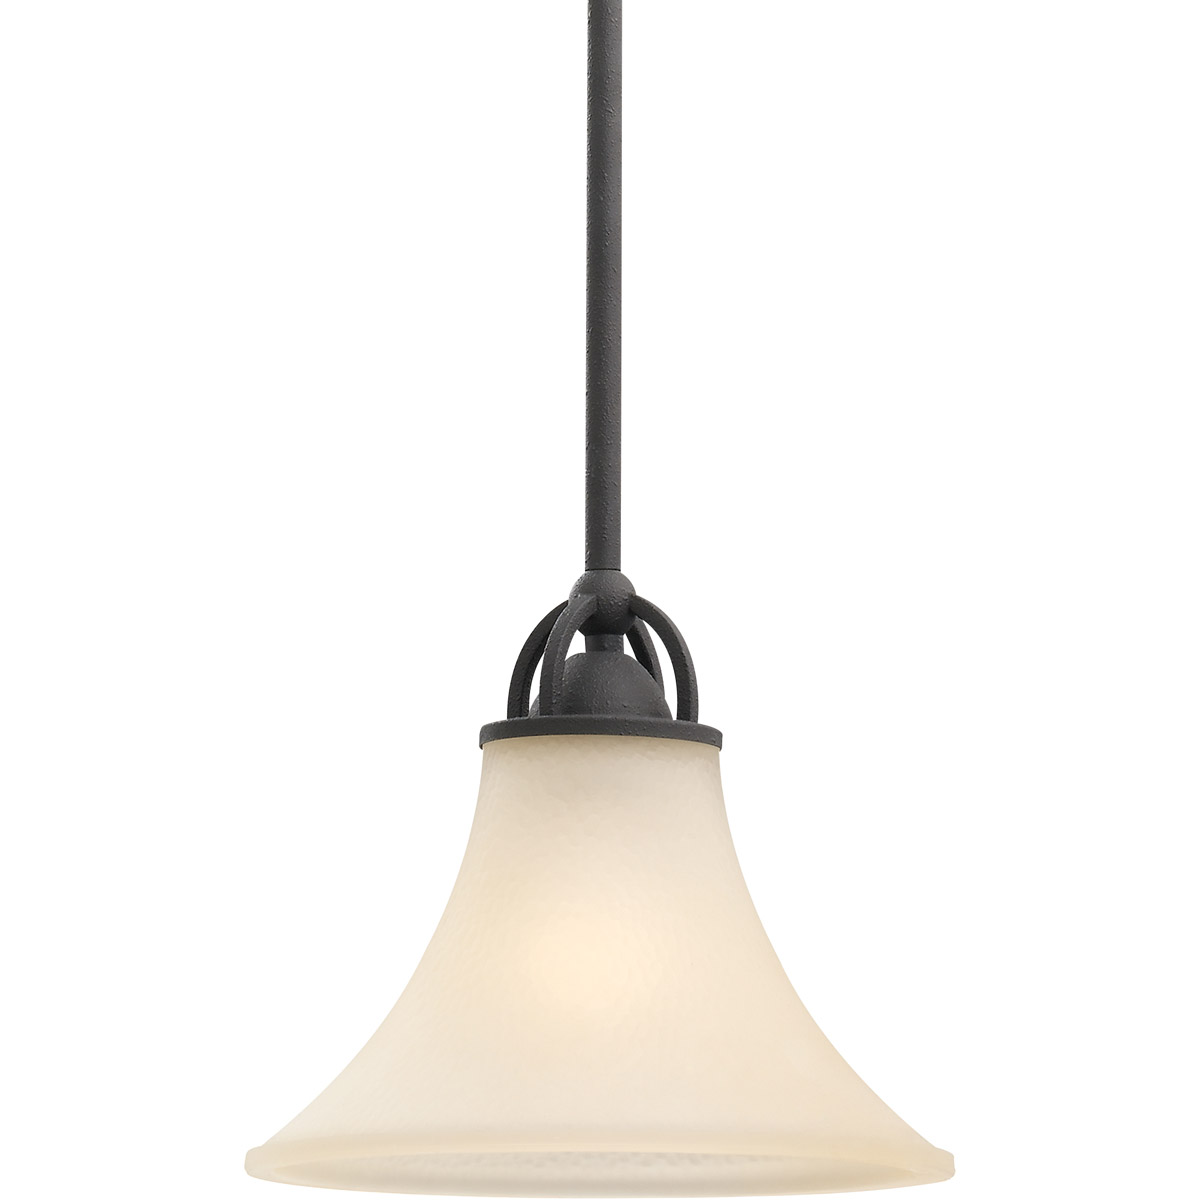 Sea Gull Lighting Somerton 1 Light Mini Pendant in Blacksmith 61375-839